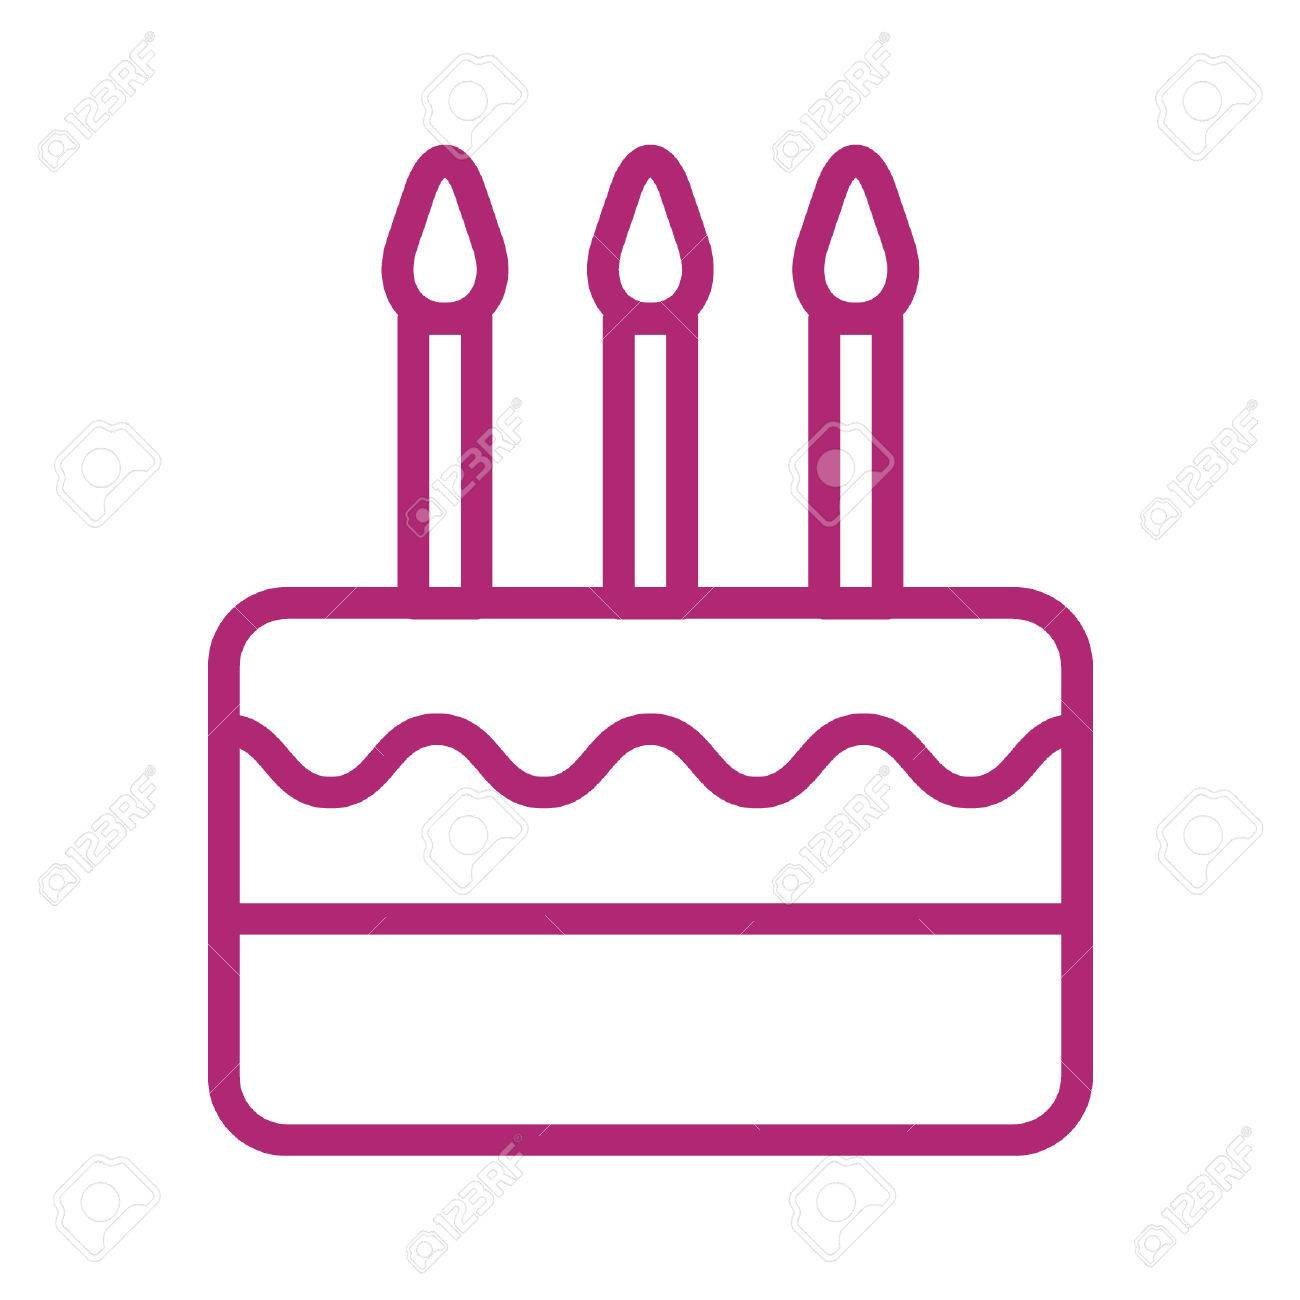 Birthday Celebration Cake With Candles Line Art Icon Royalty Free